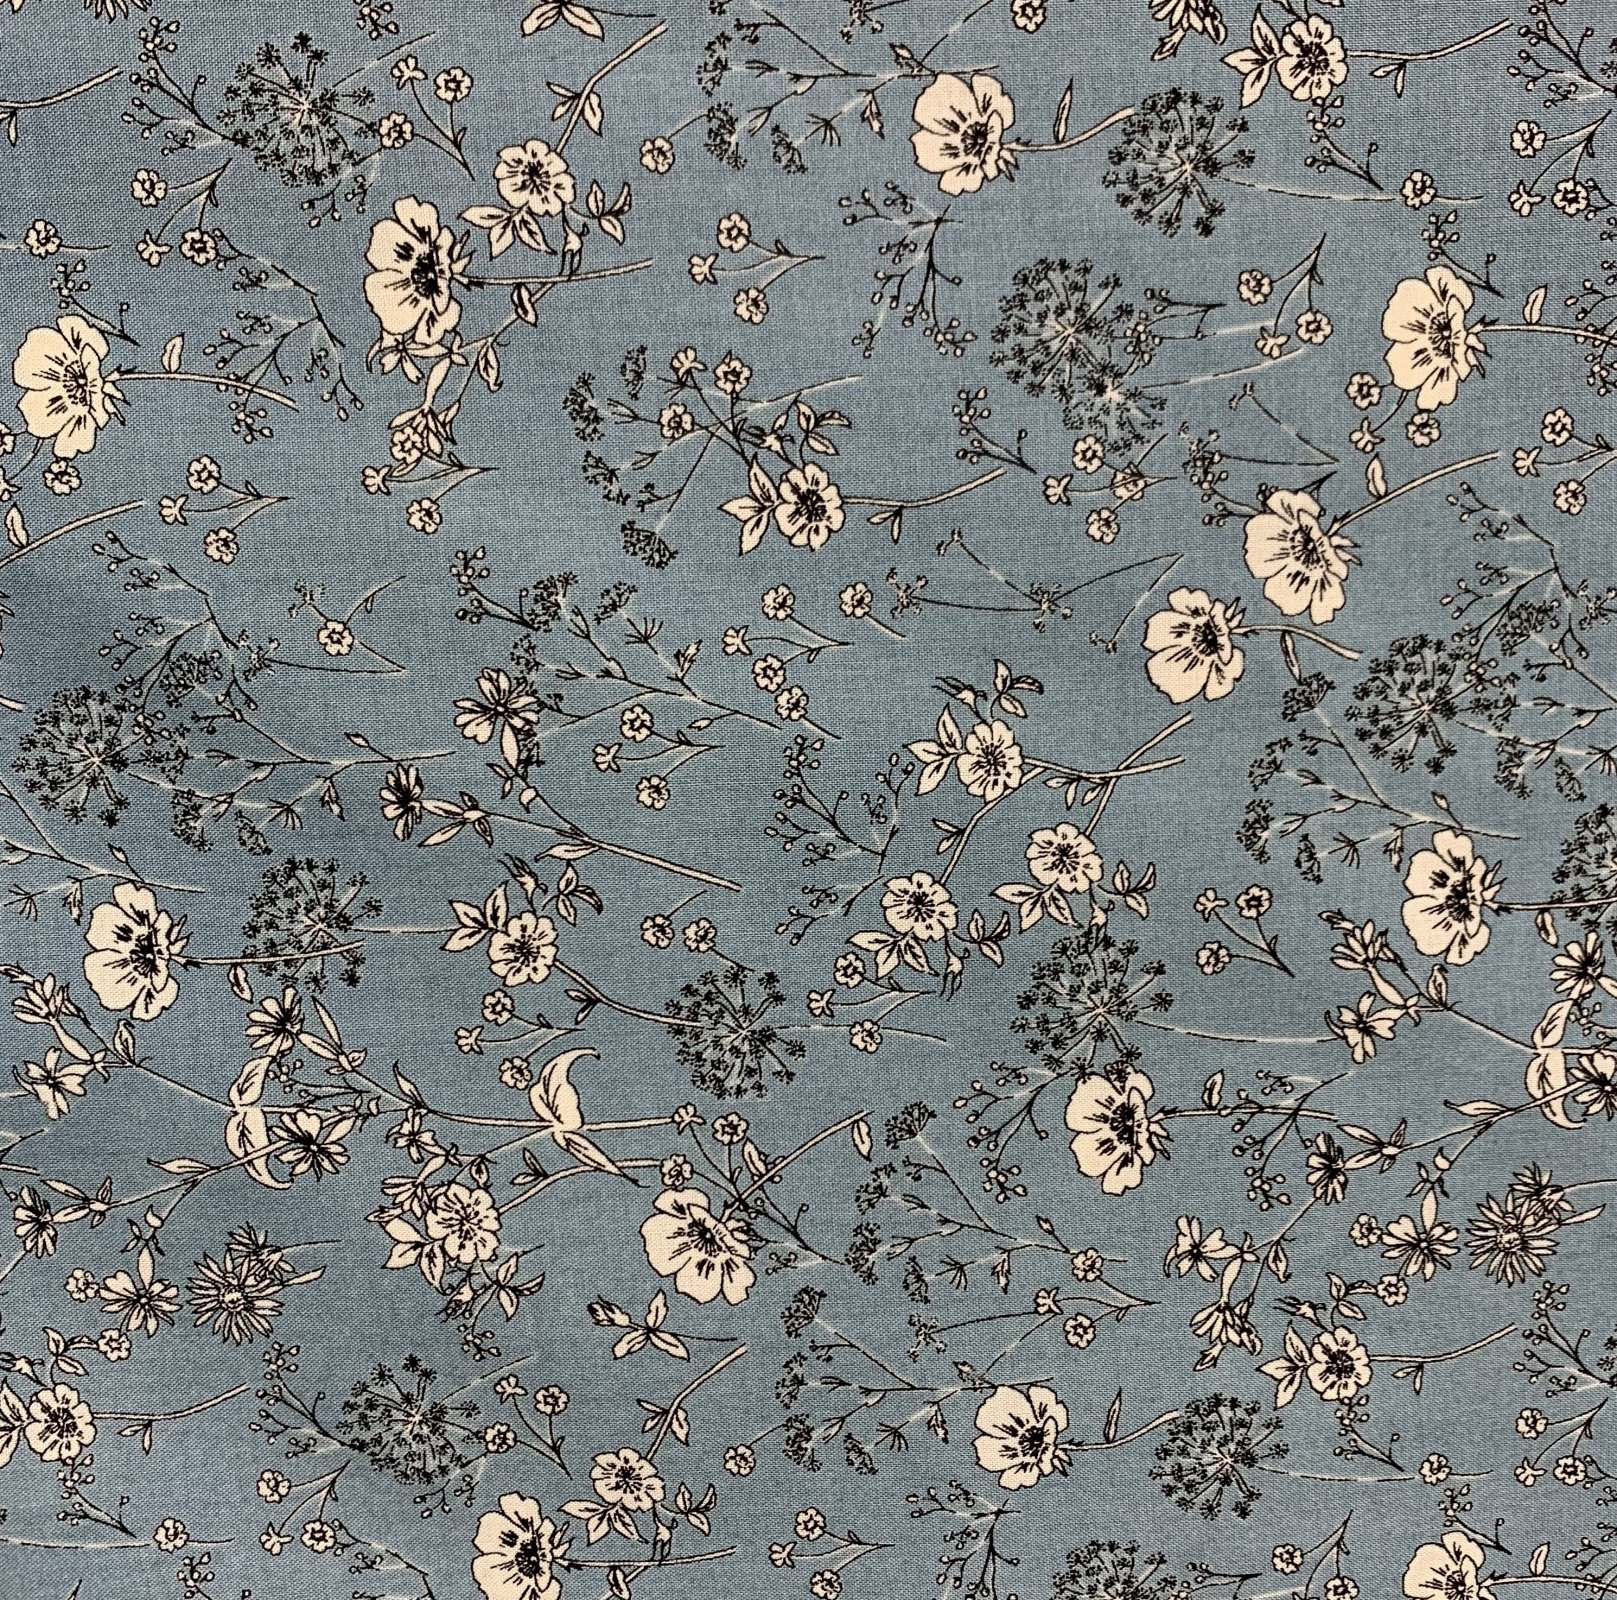 Yuwa - Charmant Collection - Dusty Blue Linework Floral